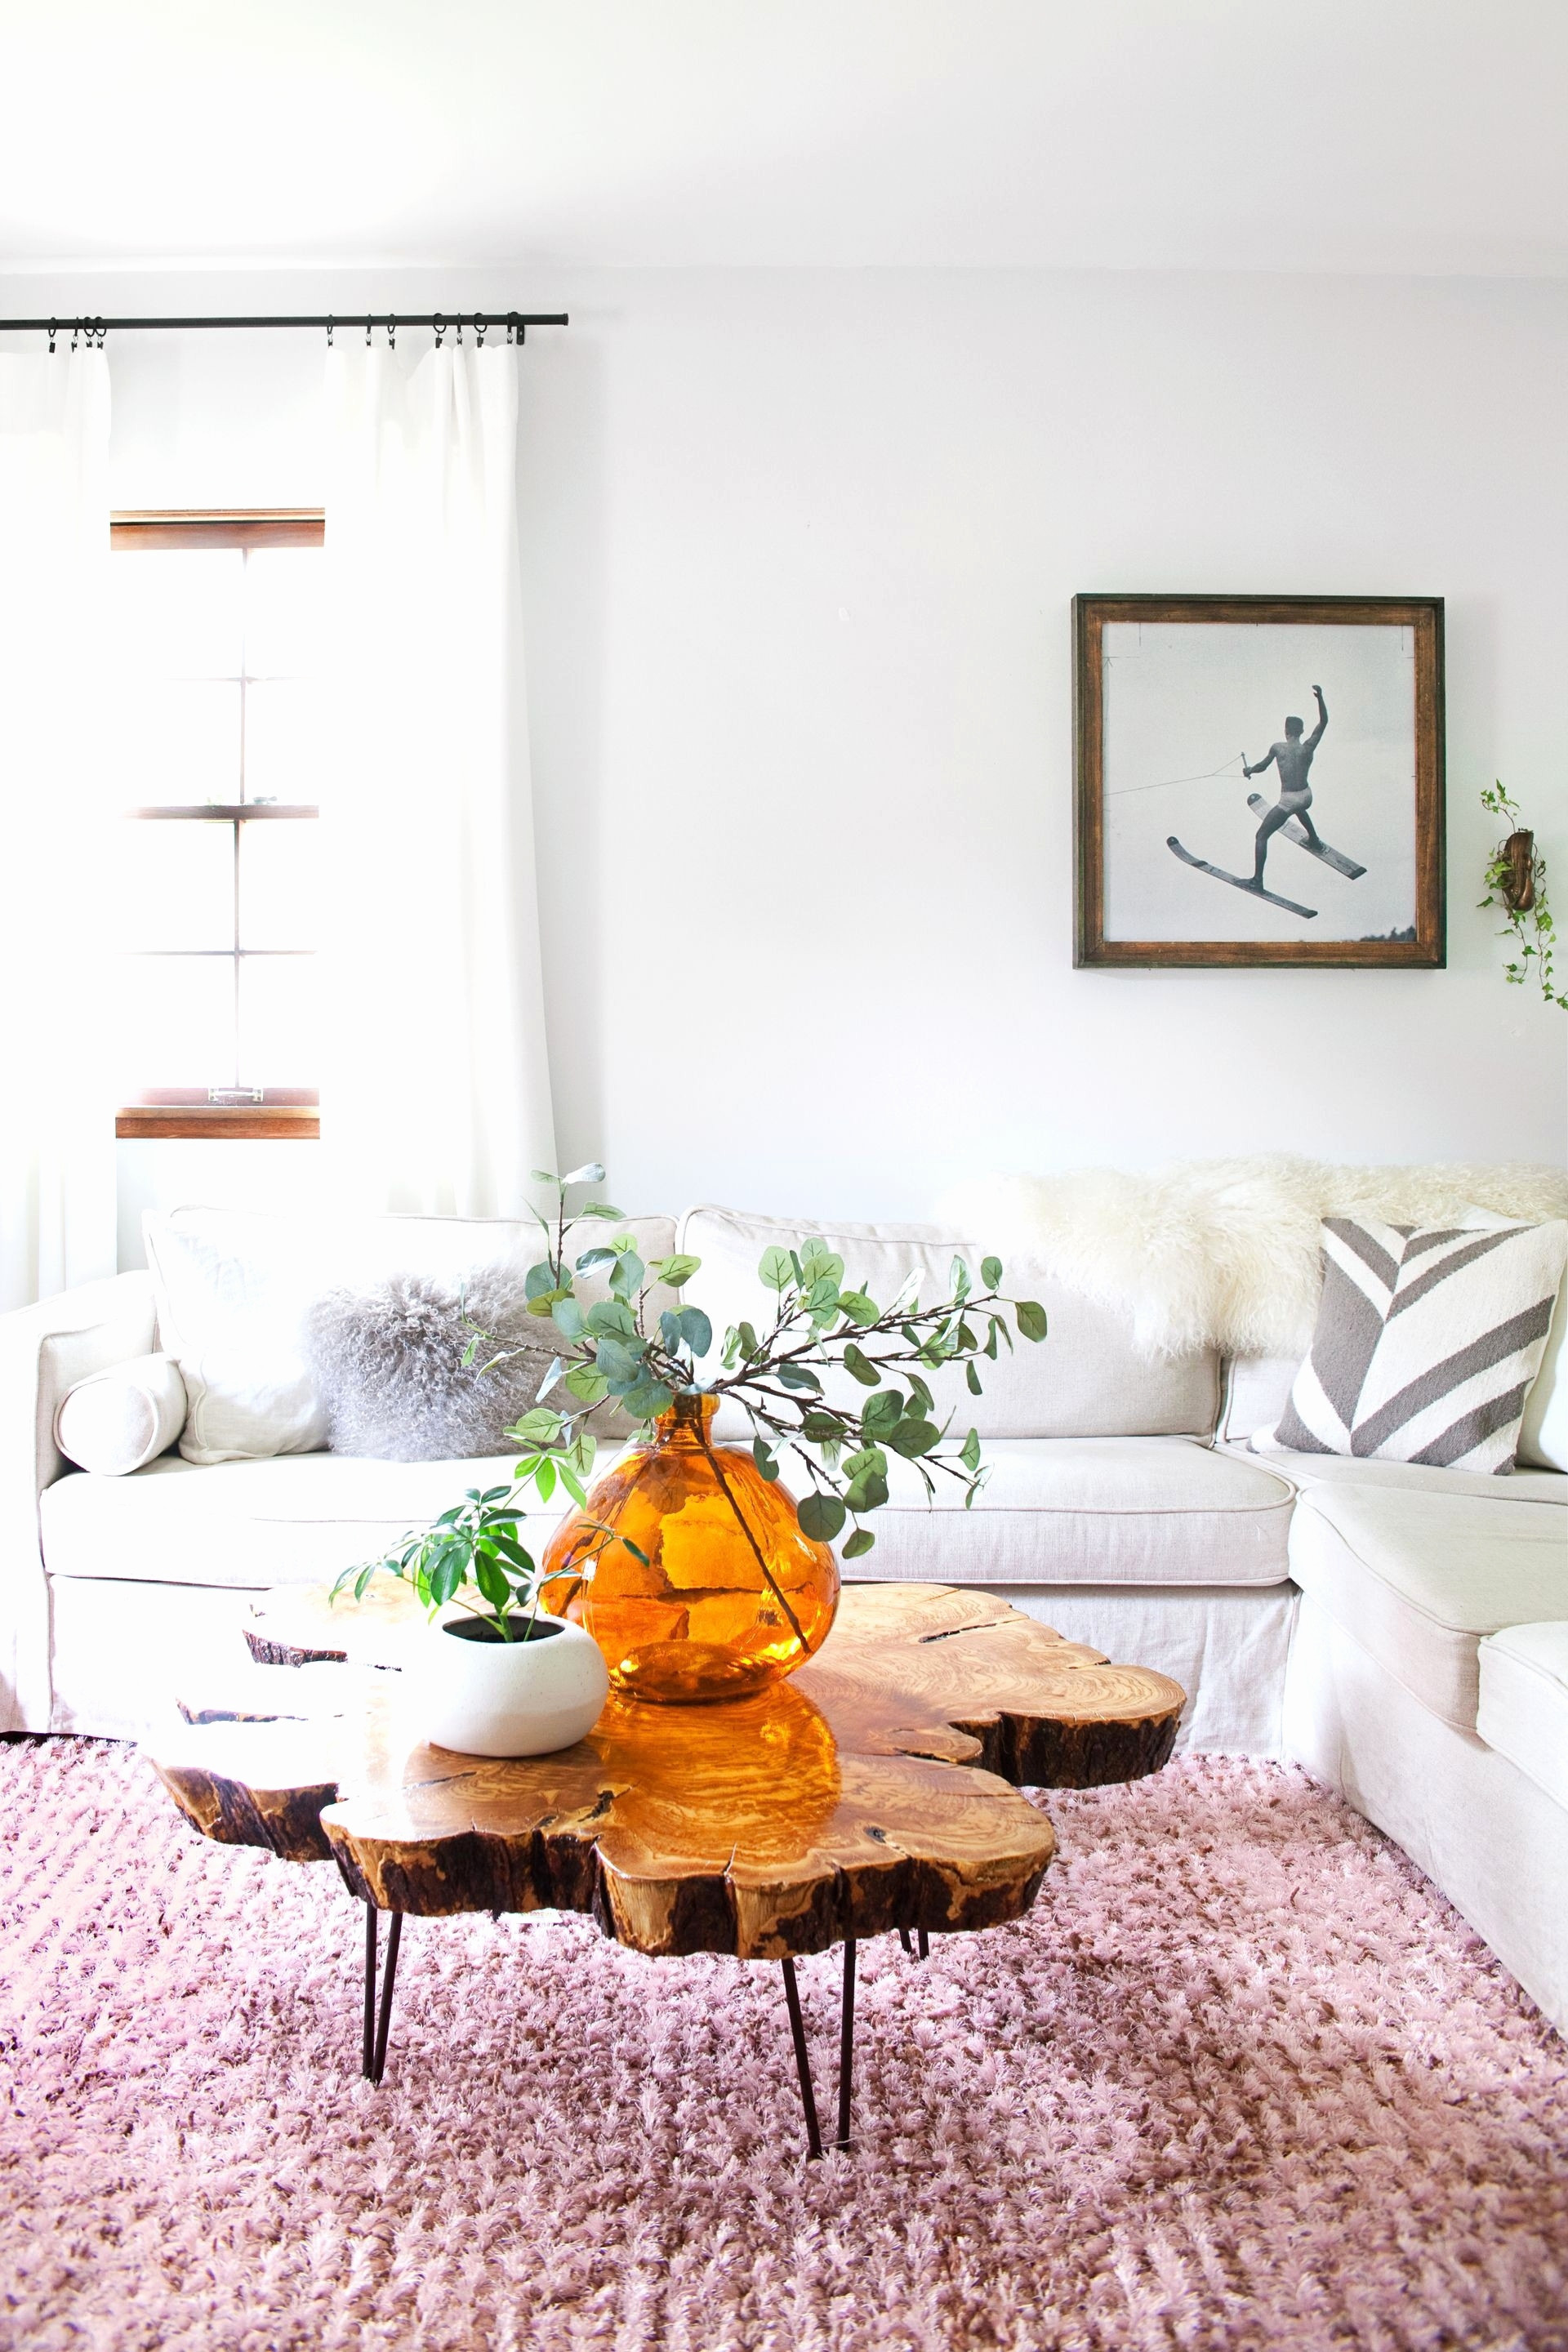 eiffel tower vase decoration ideas of 33 inspirational light decoration ideas for home creative lighting inside led lights for home interior new lamps lamp art lamp art 0d lampss inspiration